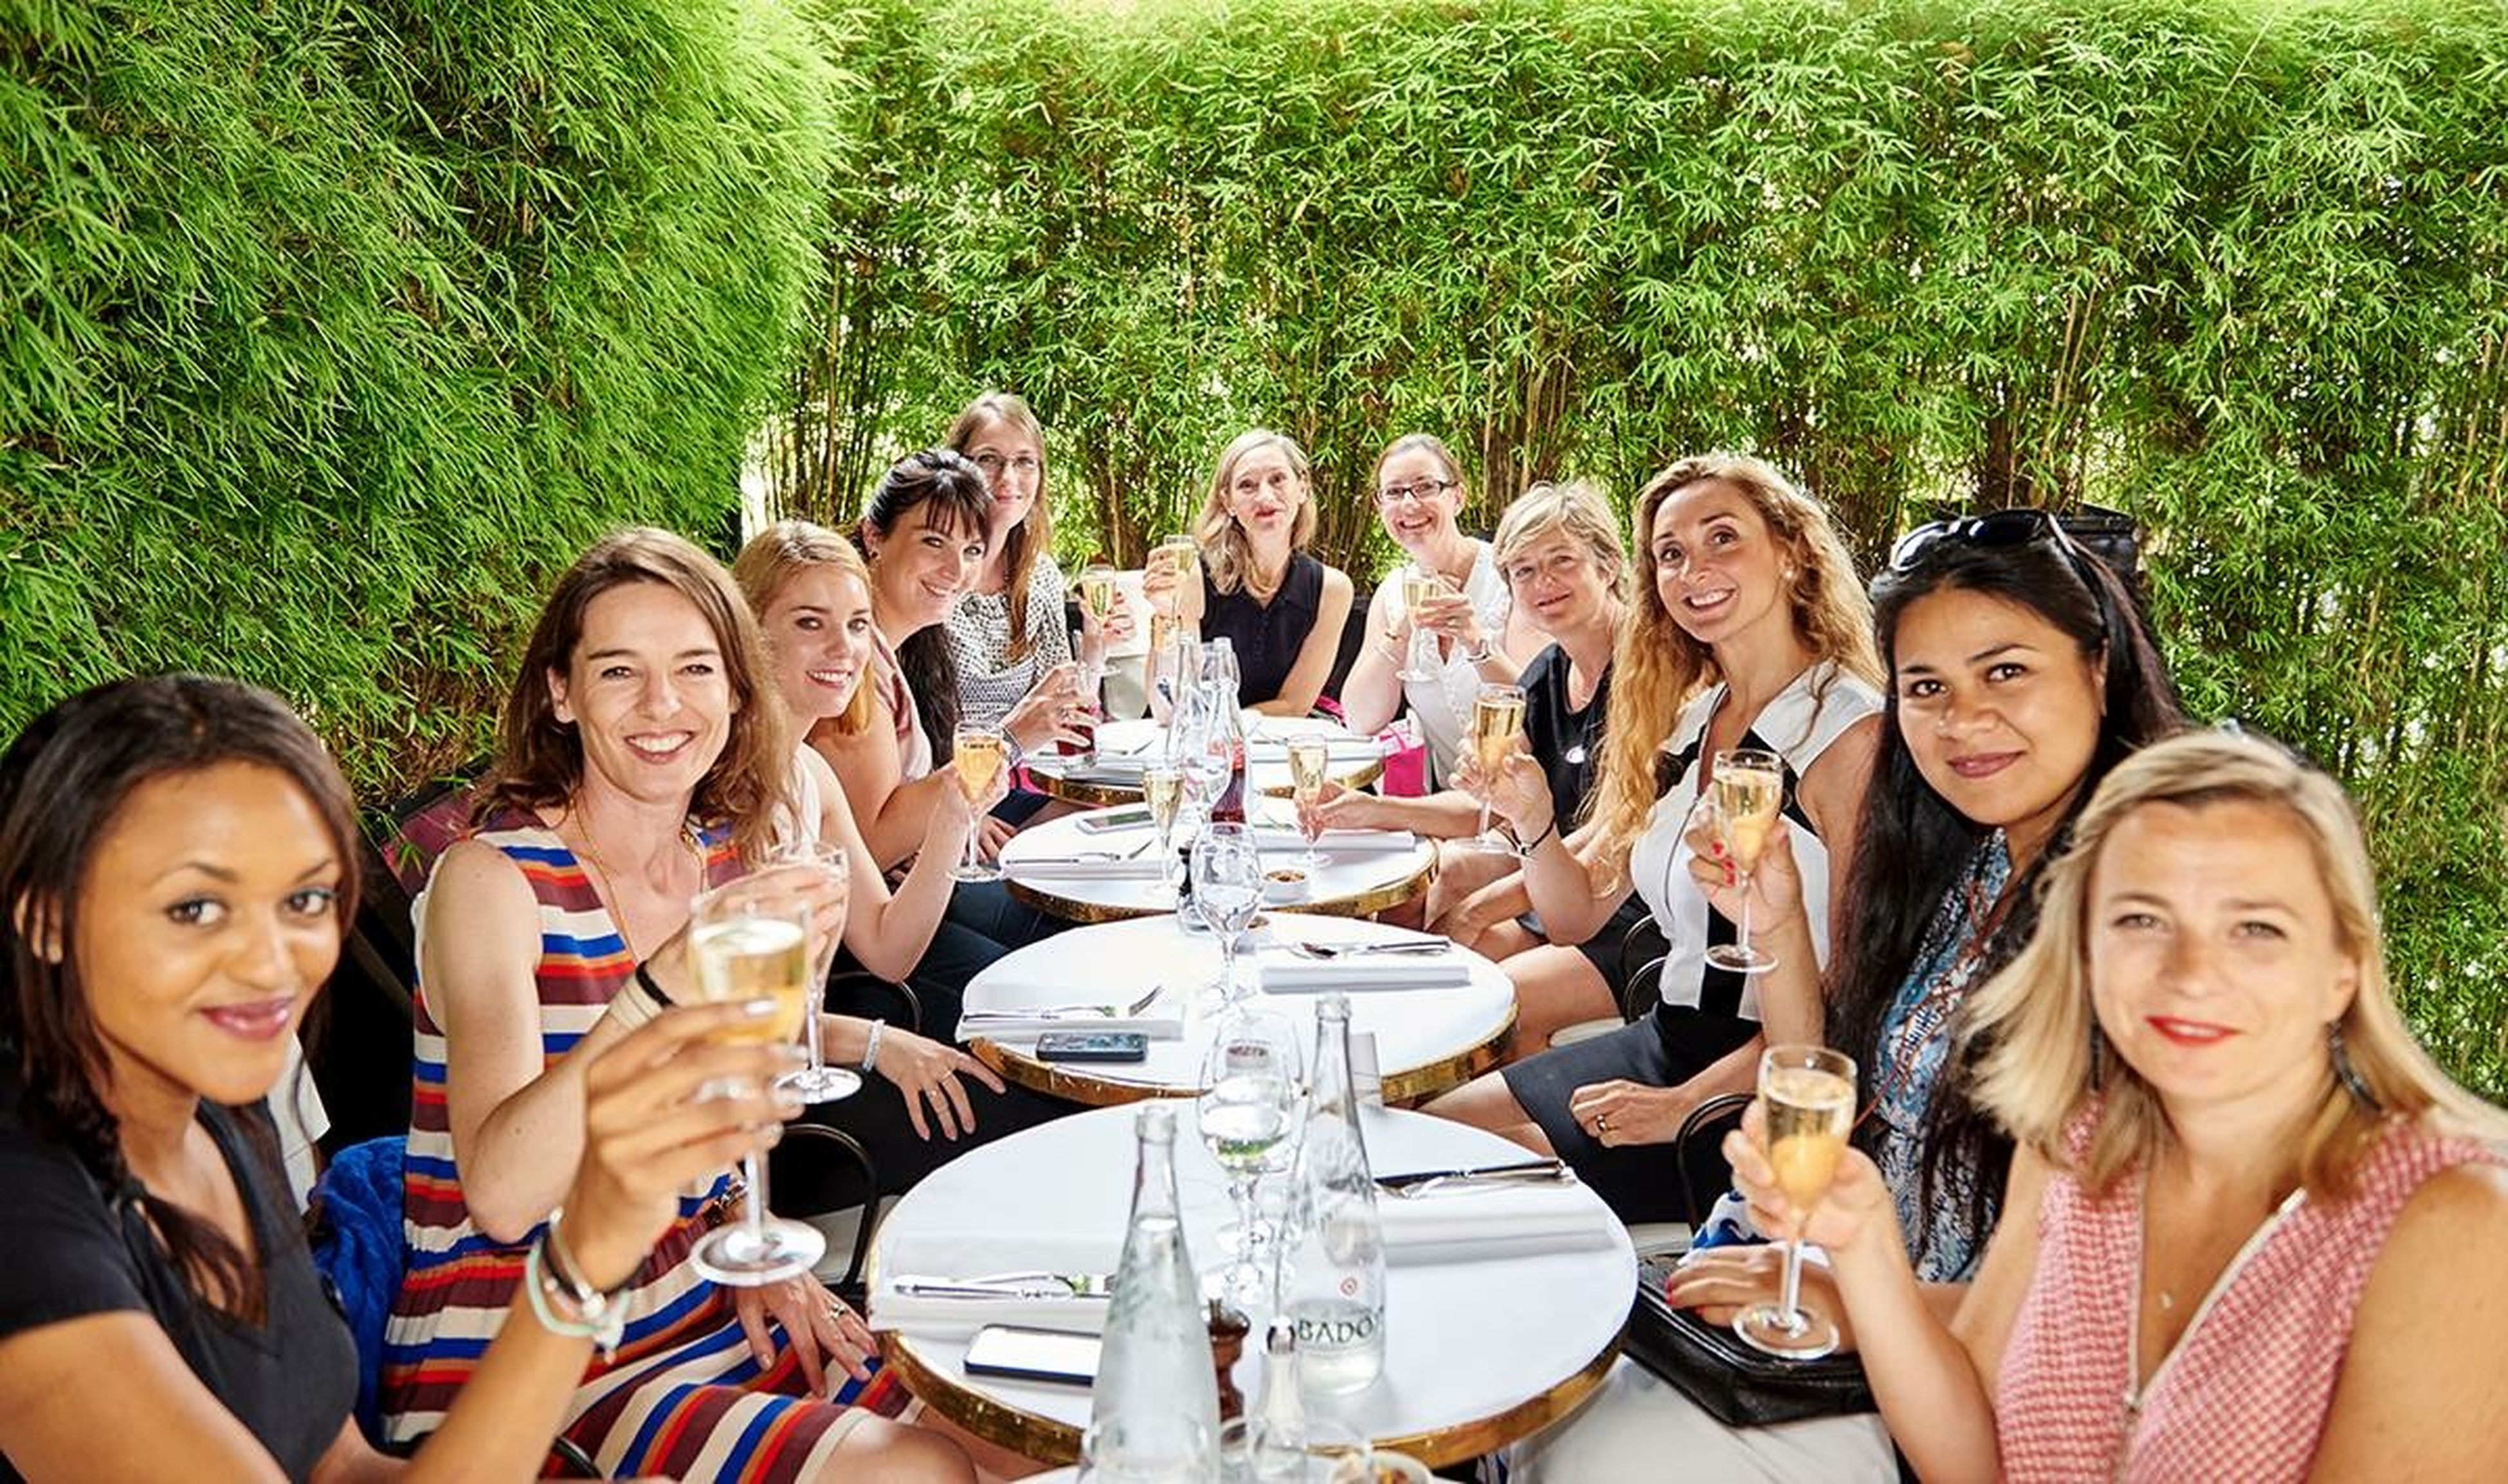 togetherness, lifestyles, leisure activity, bonding, friendship, happiness, enjoyment, fun, person, large group of people, young adult, smiling, looking at camera, love, young women, casual clothing, portrait